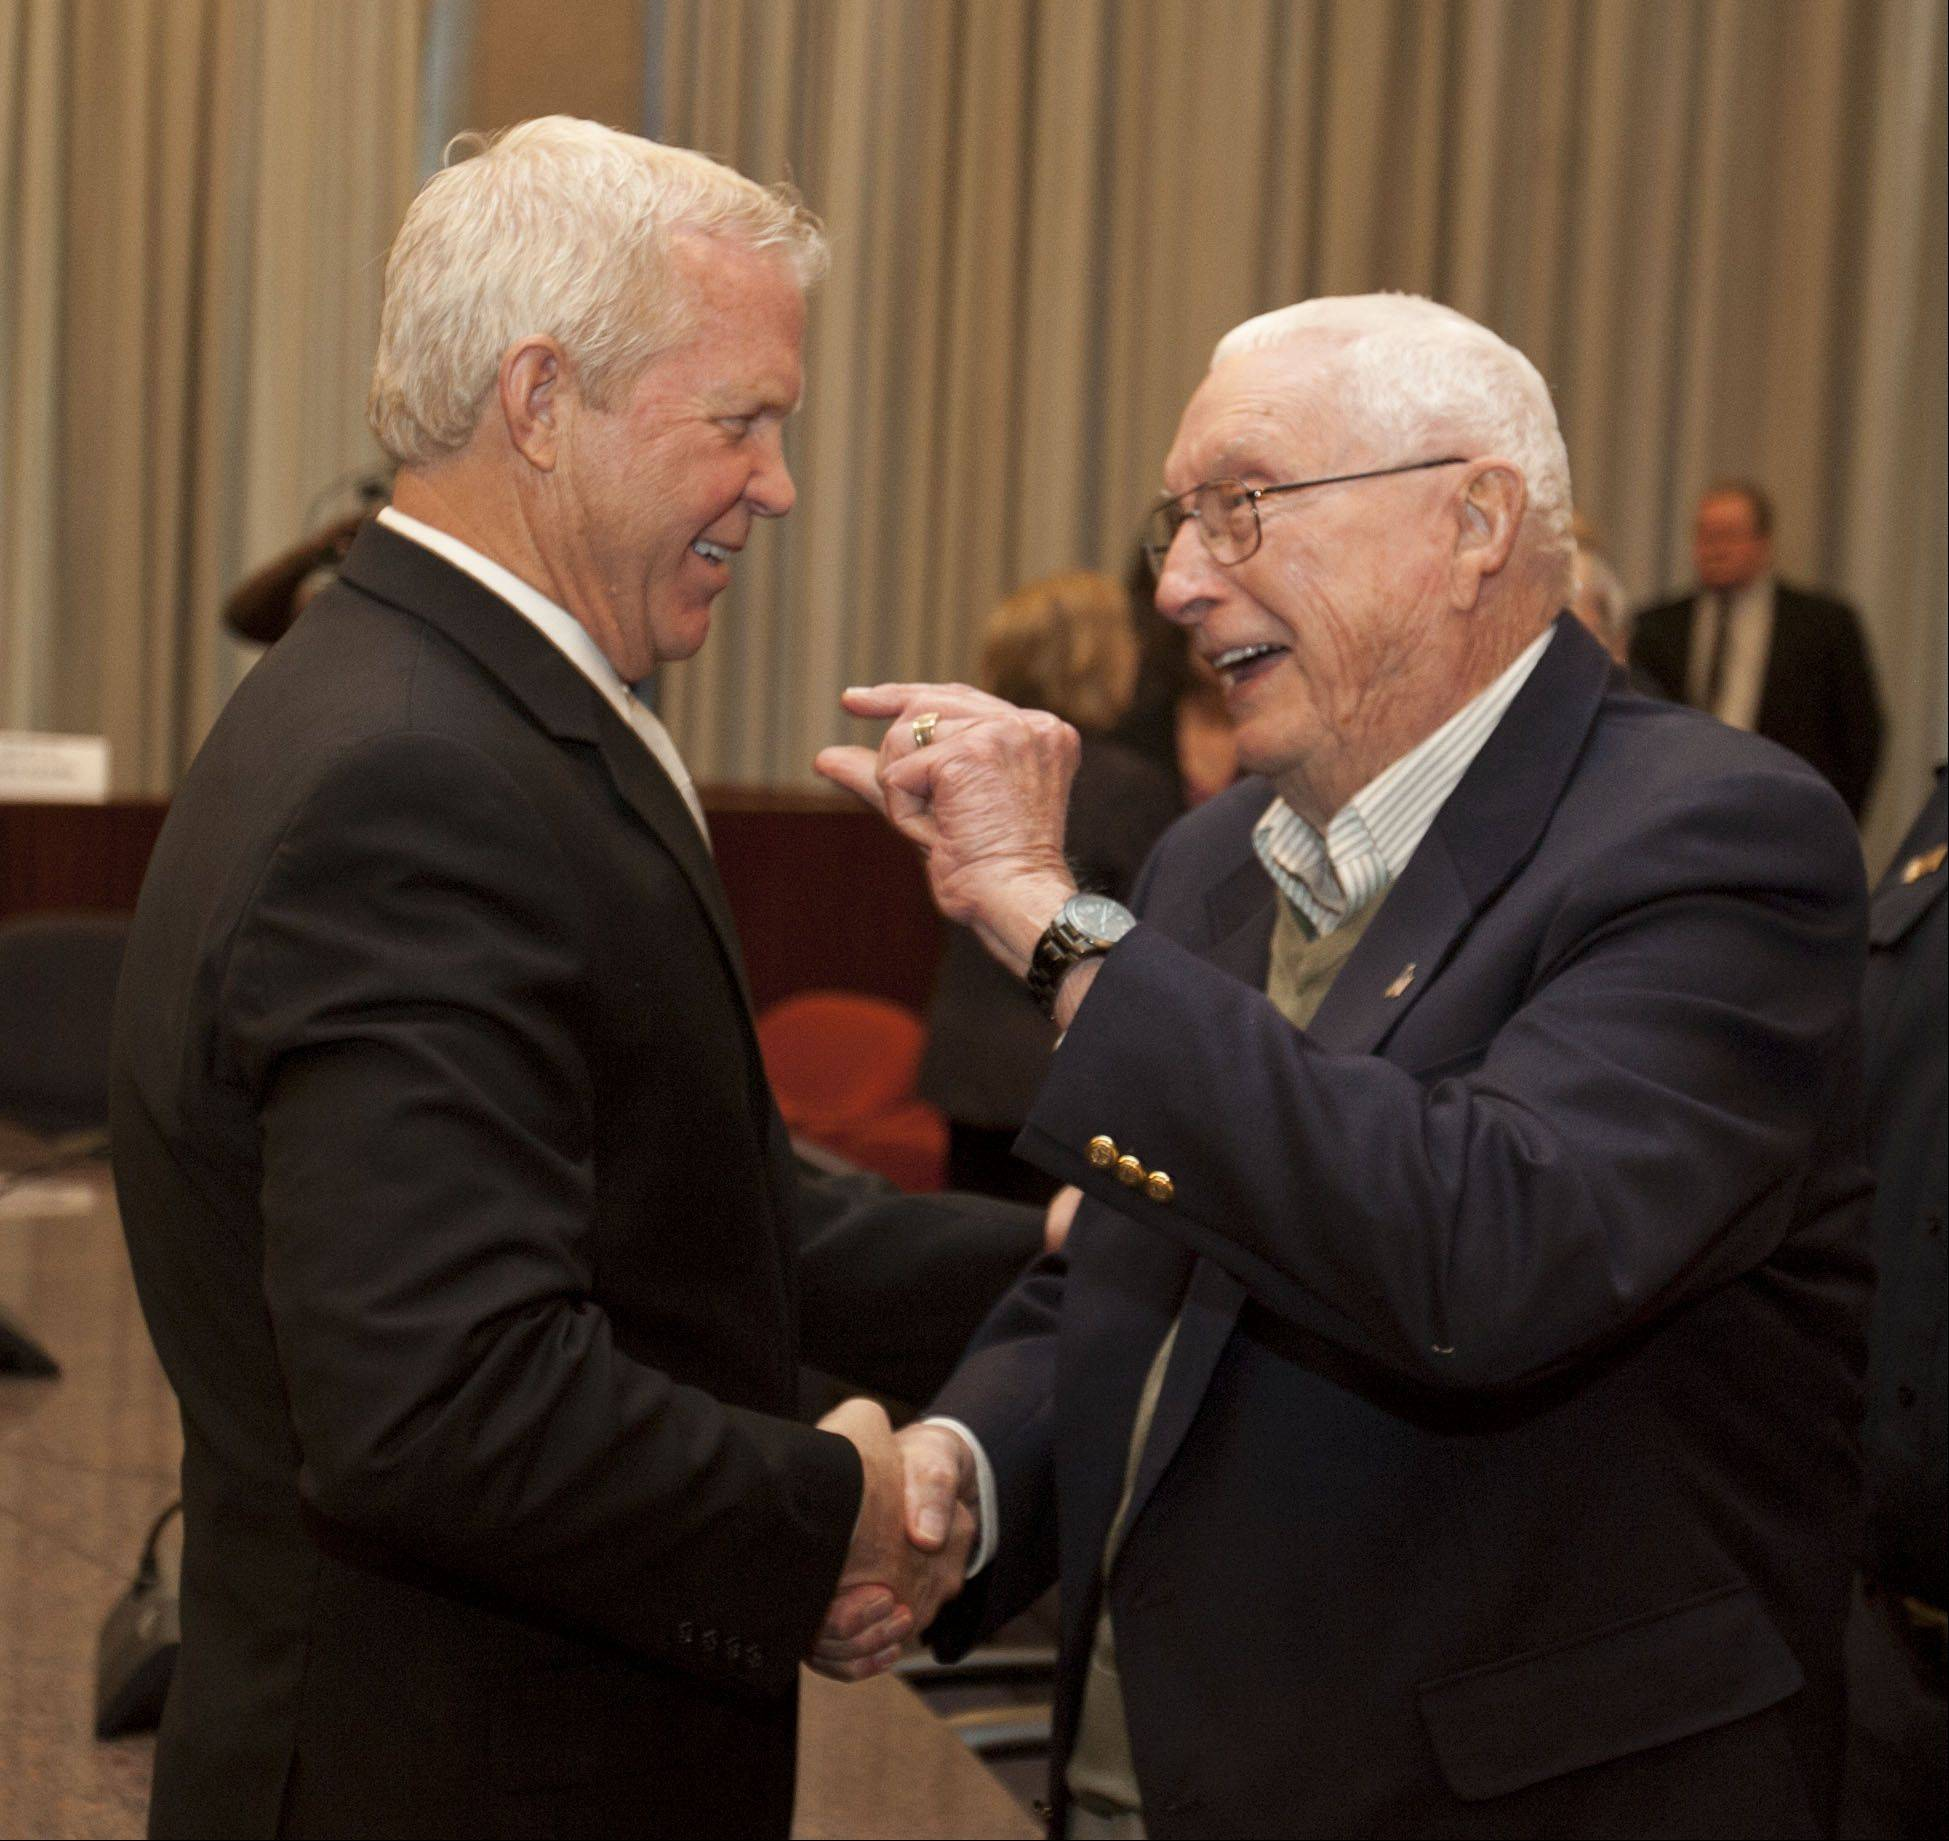 Jack McCambridge, former chairman of the Naperville Board of Fire and Police Commissions, congratulates the city's next police chief, Bob Marshall, during a ceremony Tuesday.